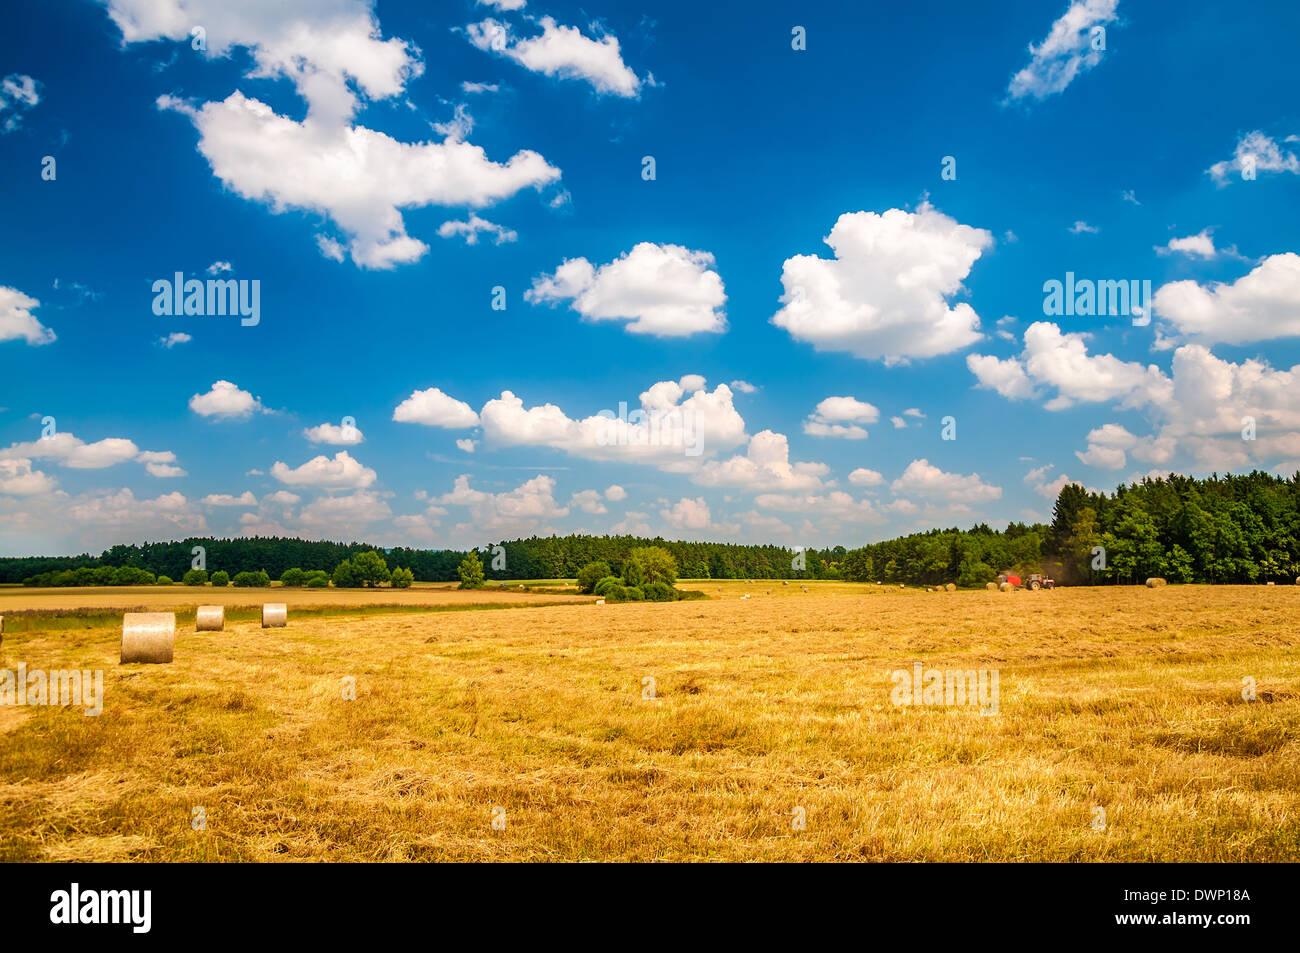 Ricks on the wheat field under blue cloudy sky Stock Photo